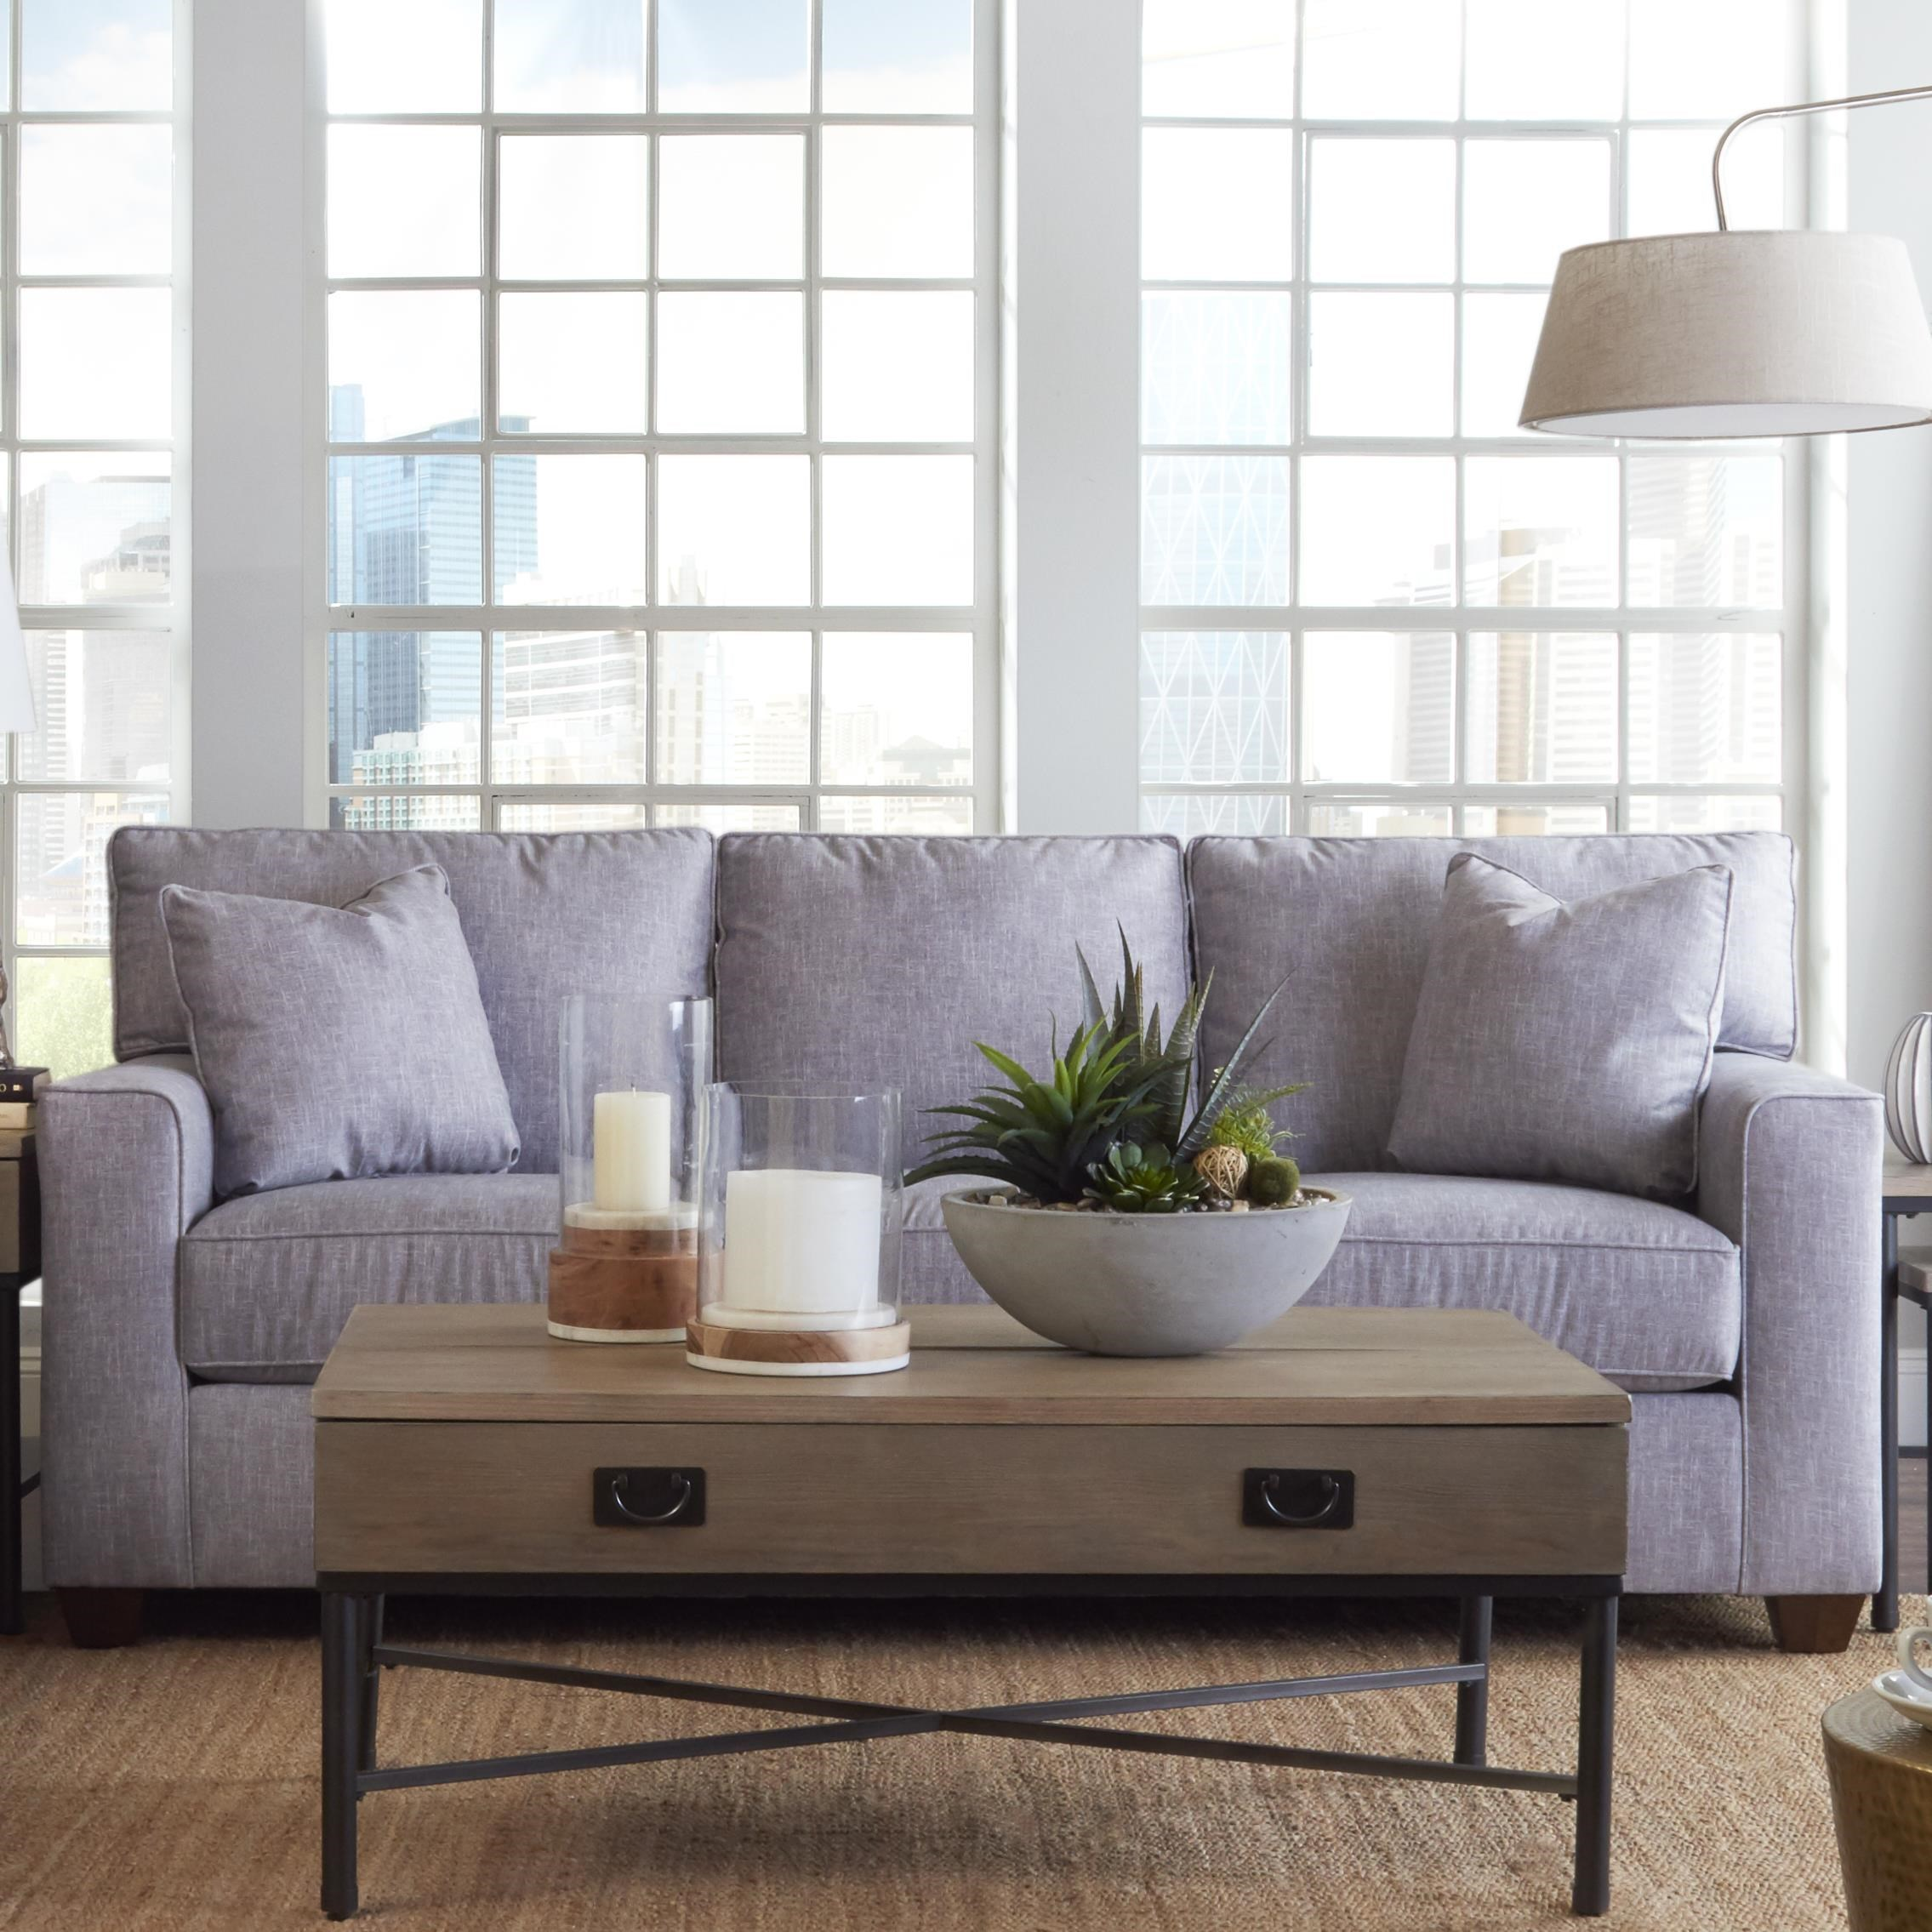 Contemporary 3-Seat Sleeper Sofa with Dreamquest Mattress